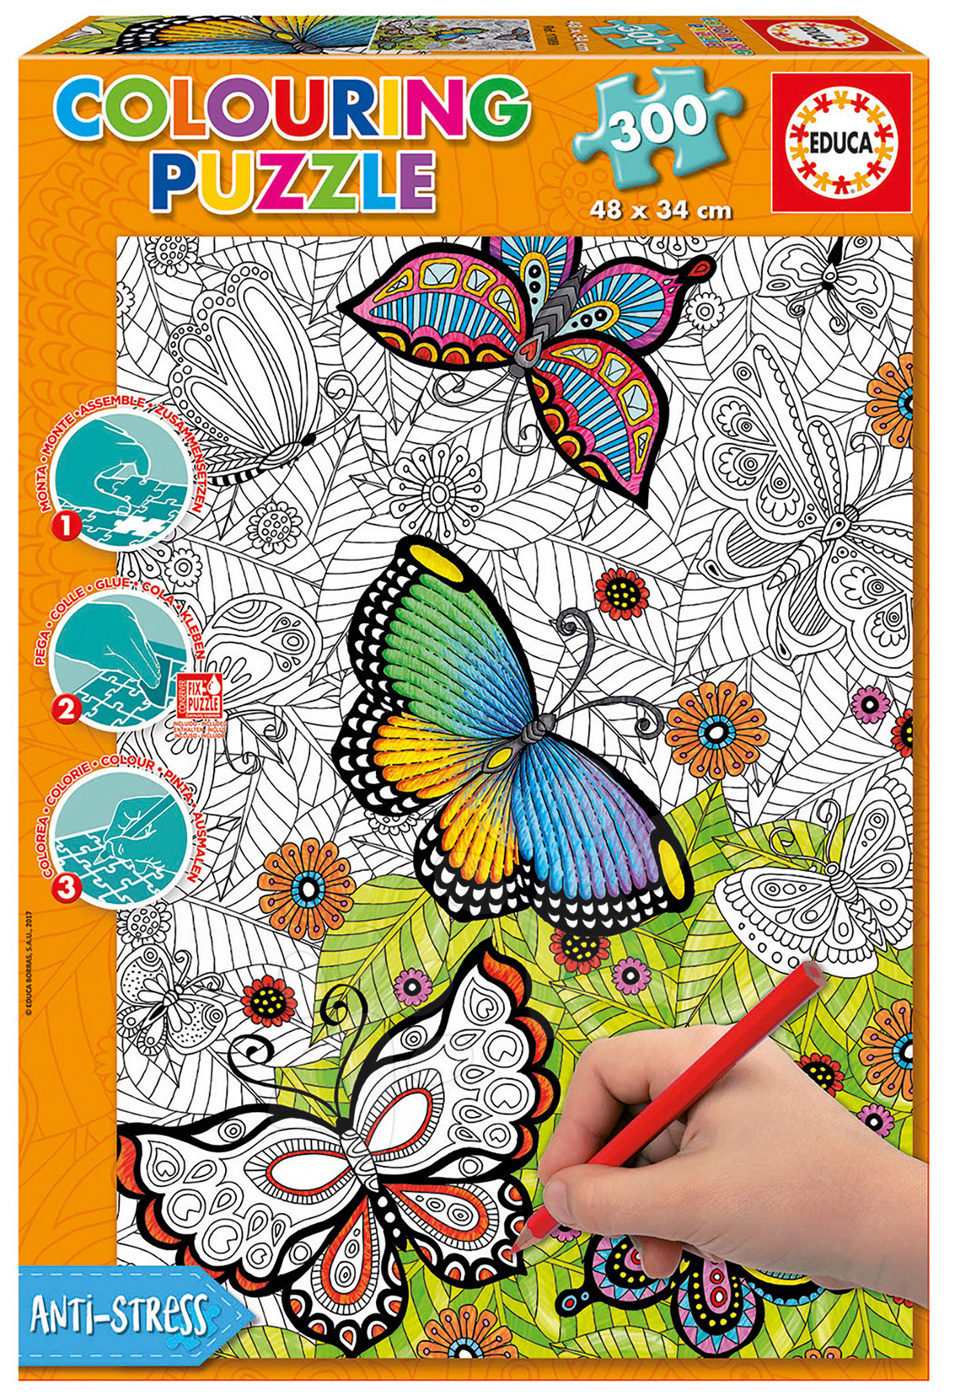 Puzzle Omalovánky All good things are wild and free Doodle Art Educa 300 dílů od 11 let